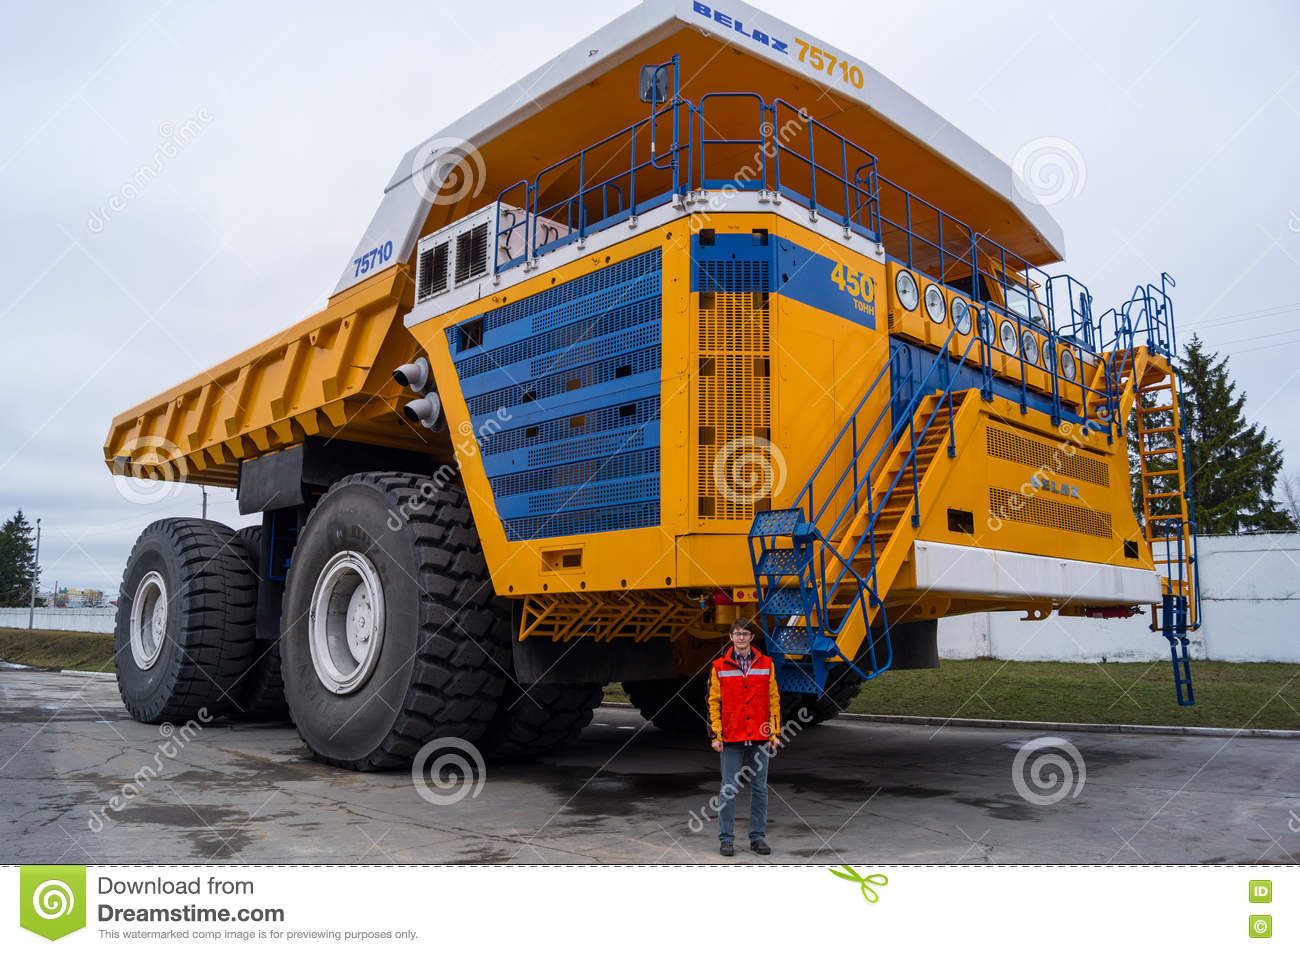 World s Largest Huge Truck BelAZ with man for scale